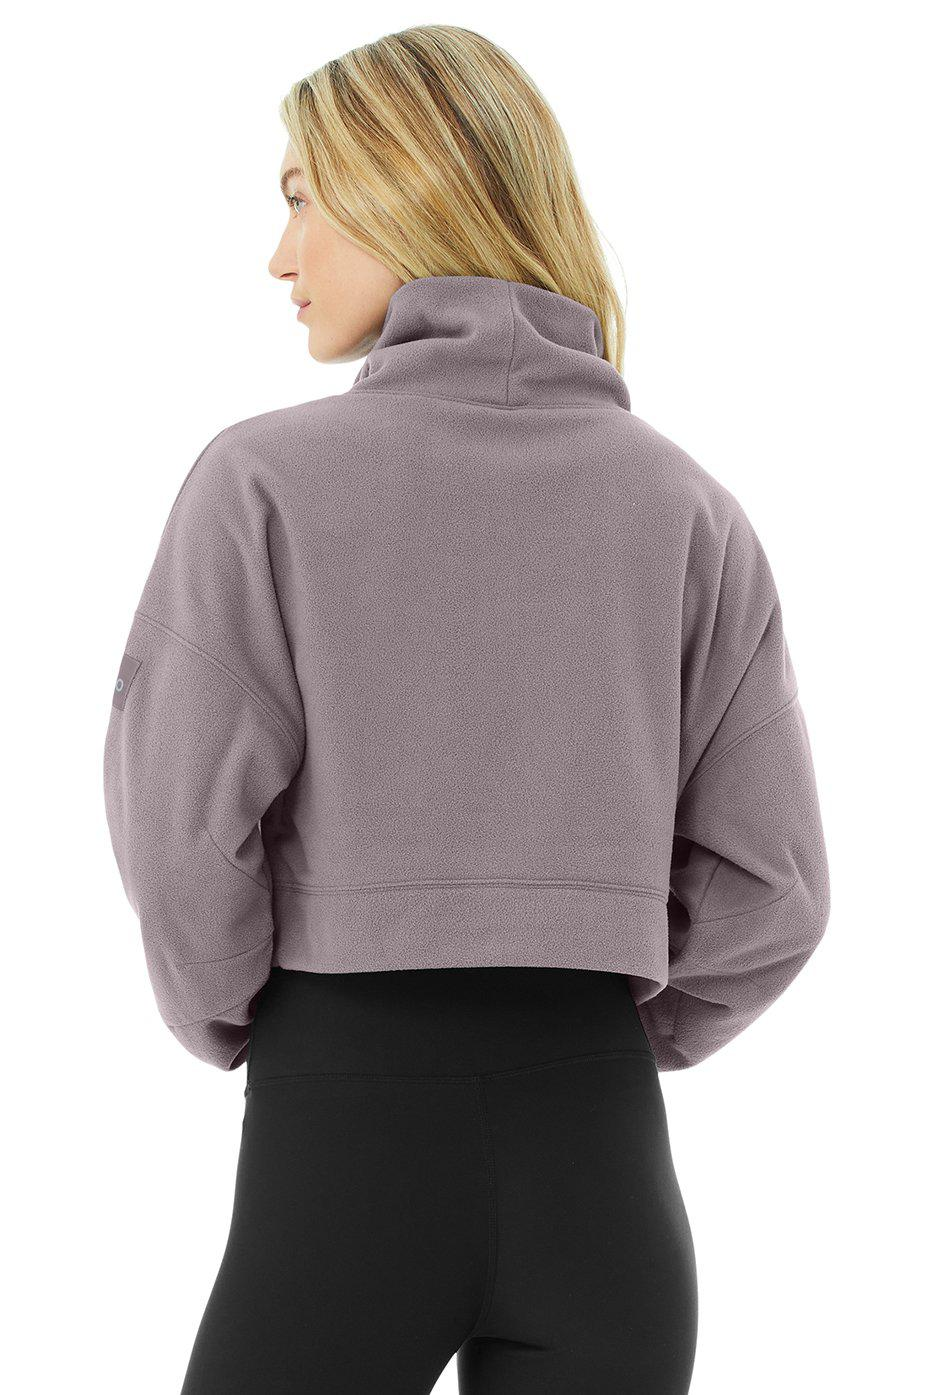 Cropped Warm Up Pullover - Purple Dusk 2